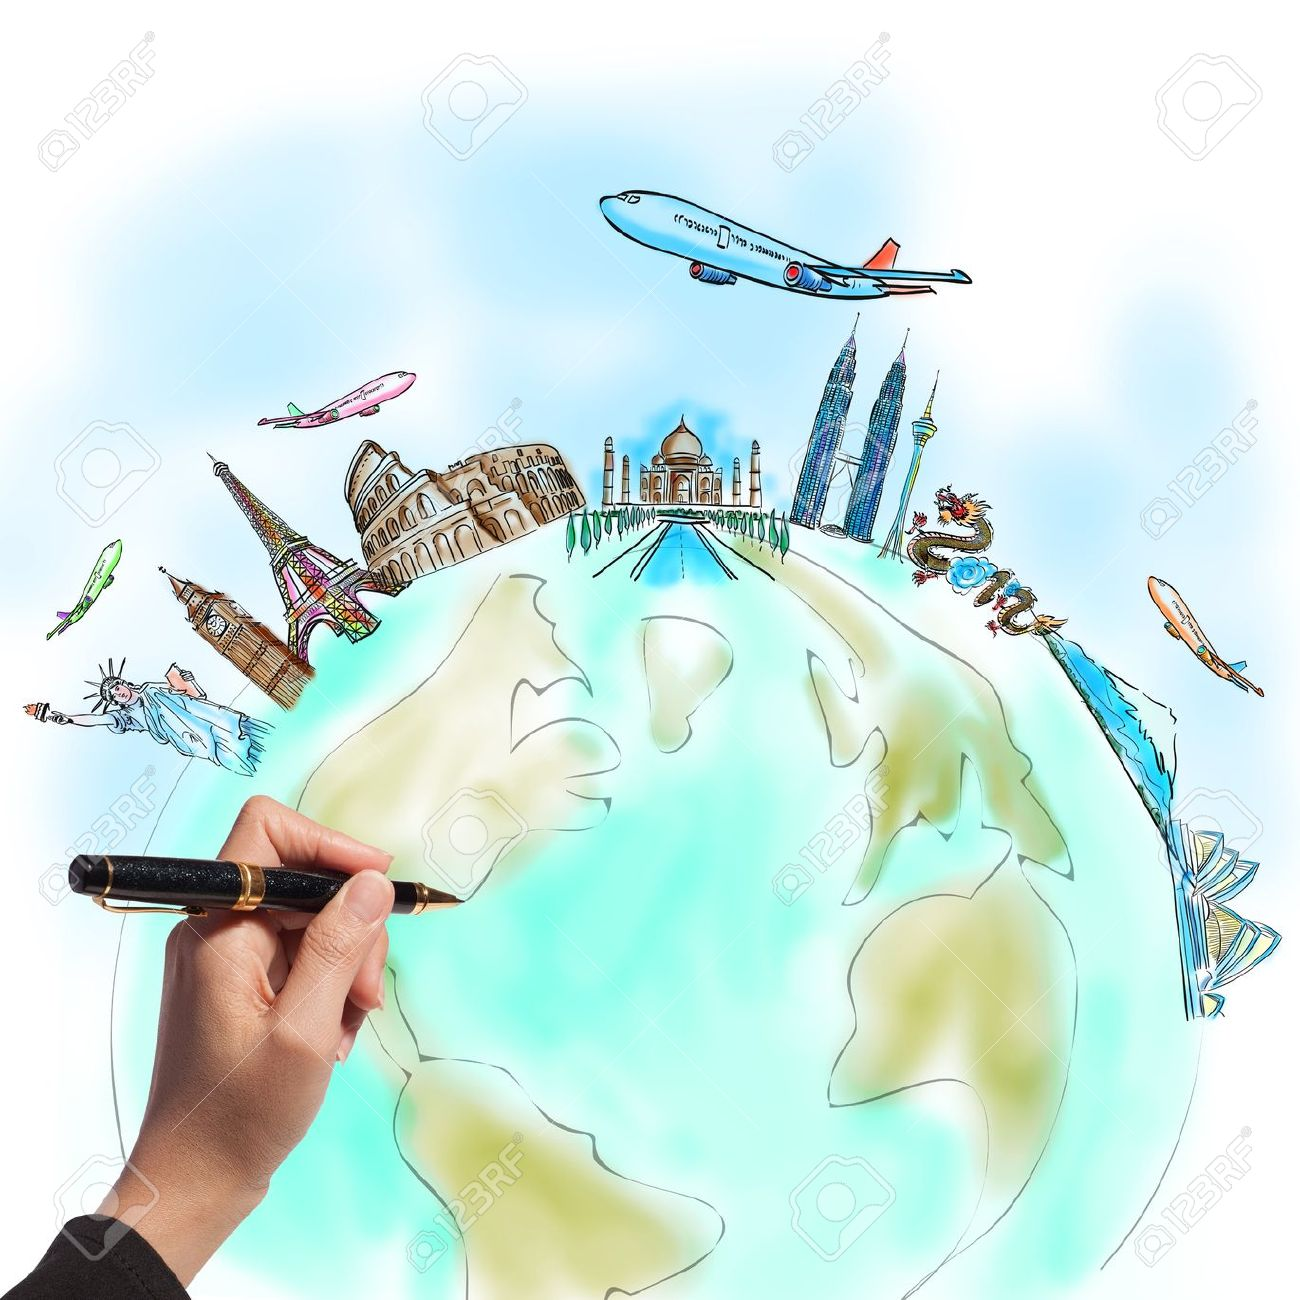 Drawing The Dream Travel Around World In A Whiteboard Stock Photo